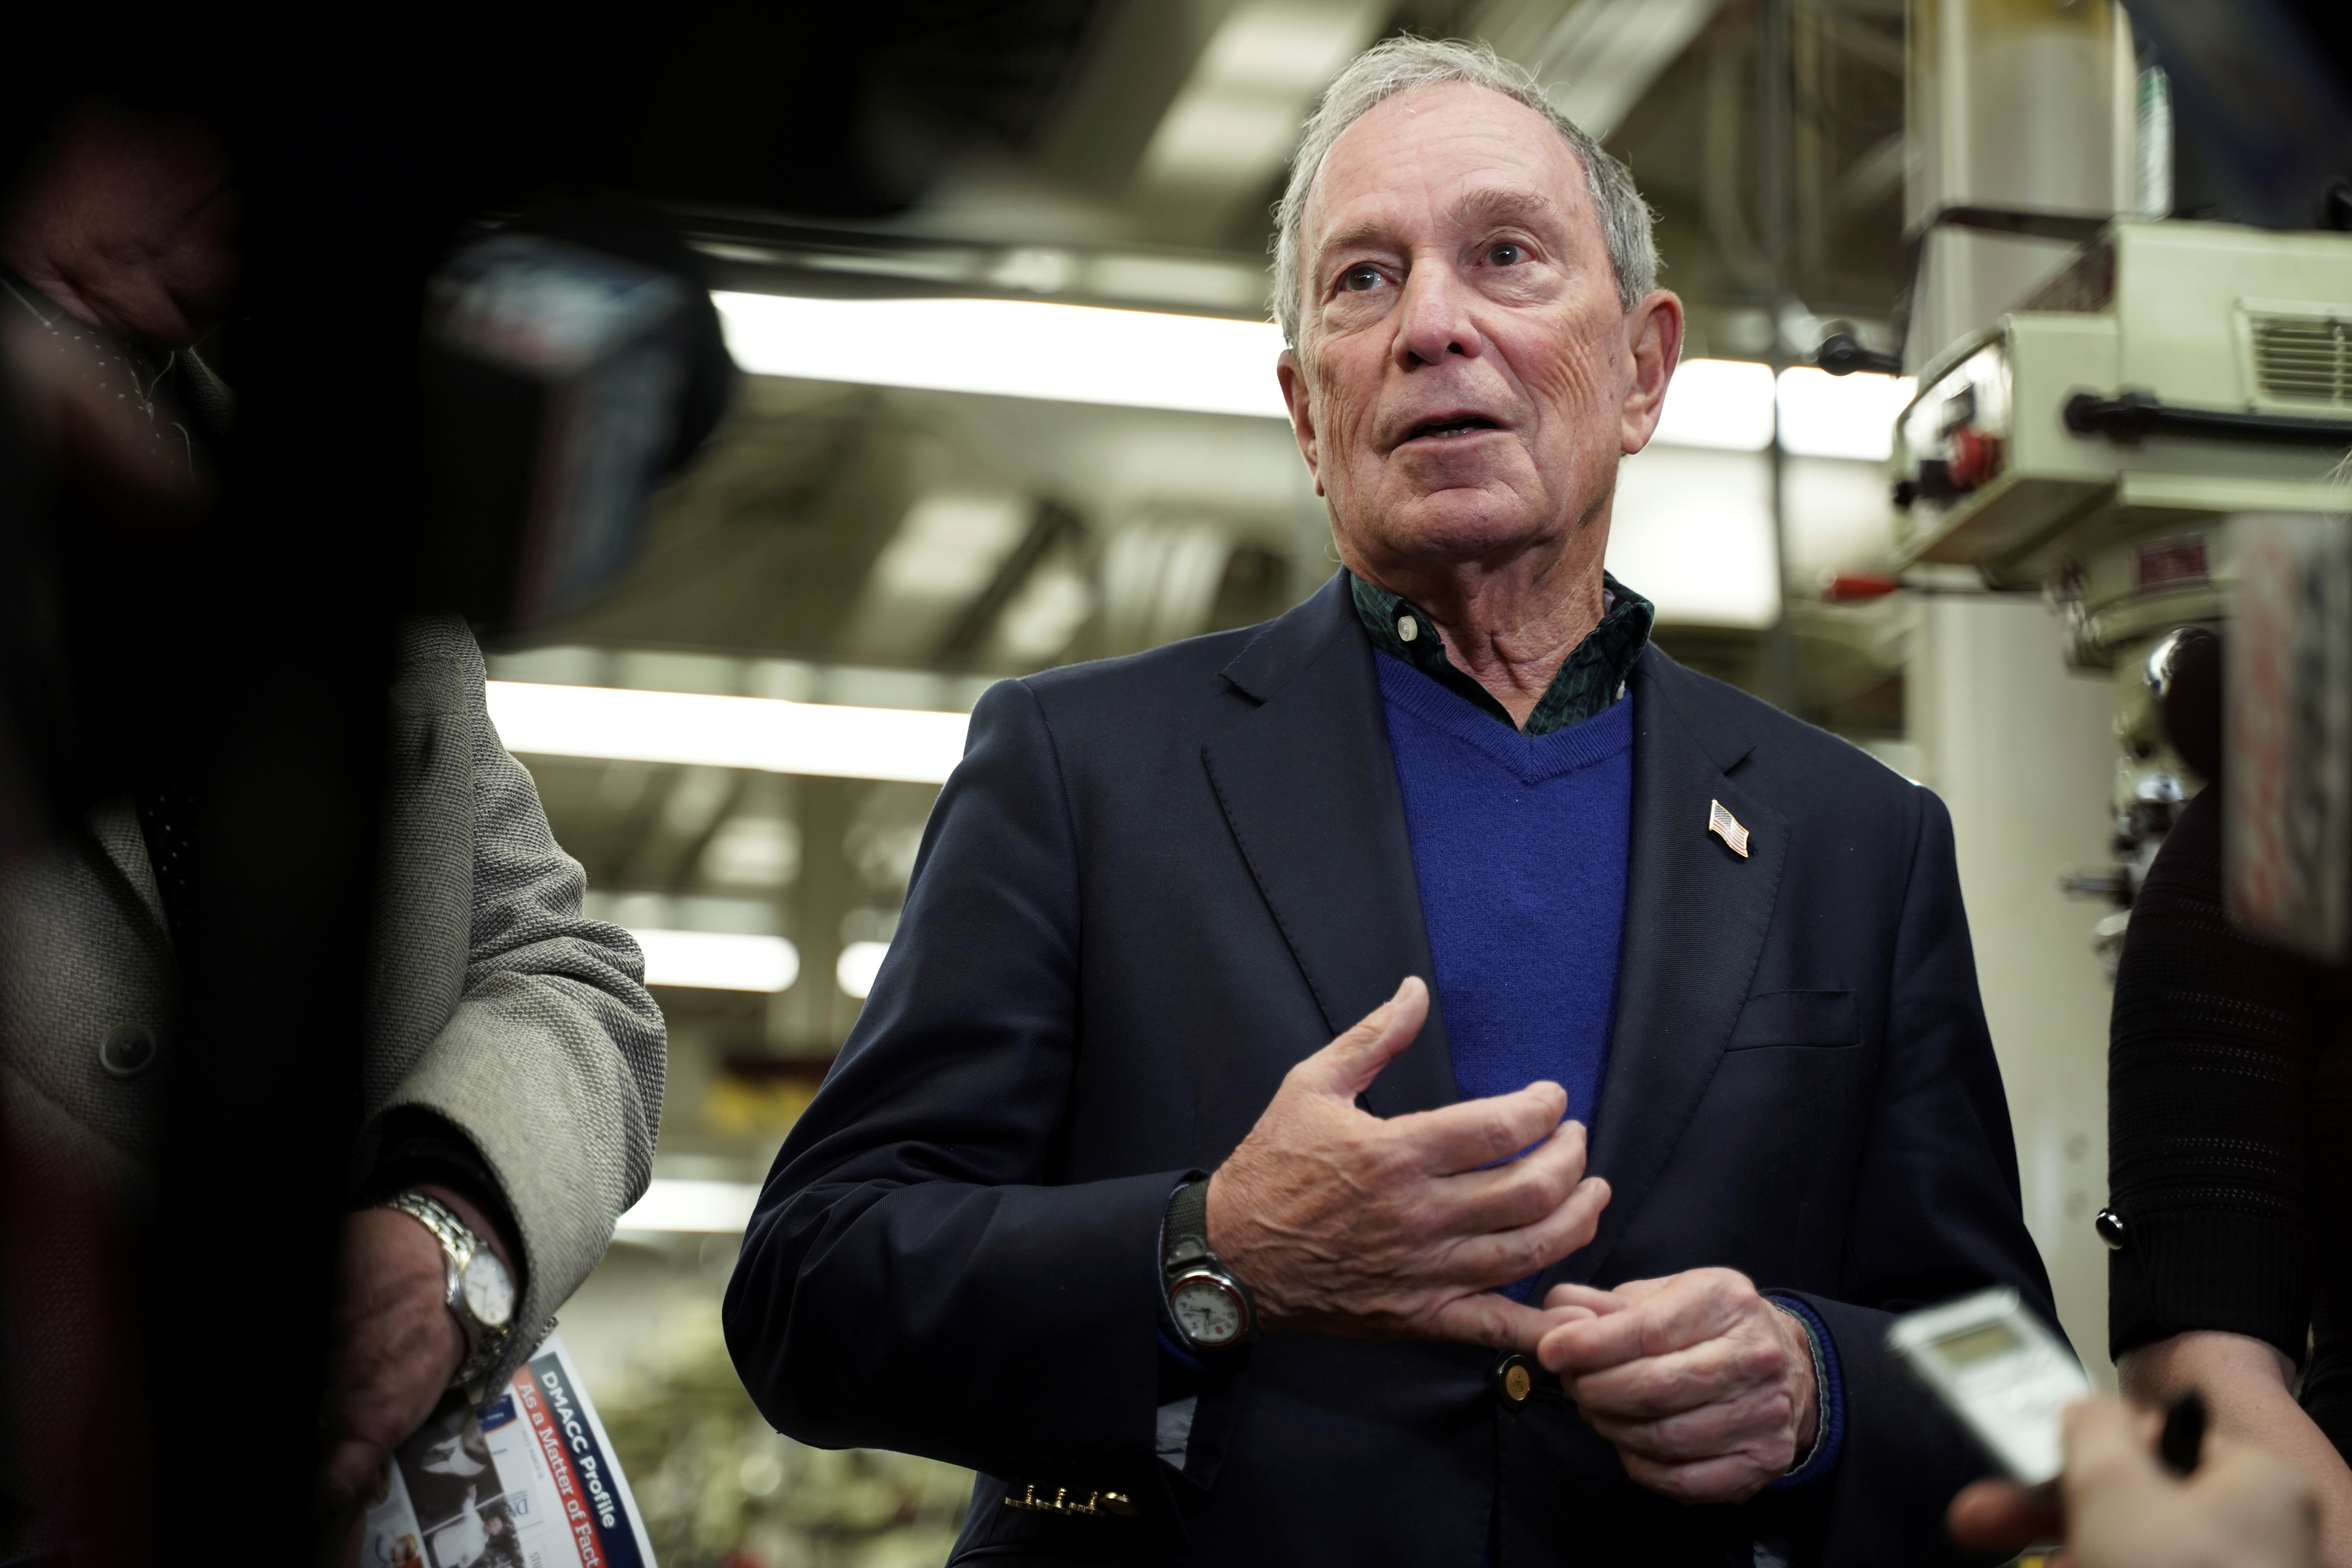 Mike Bloomberg tours Des Moines Area Community College in Ankeny, Iowa